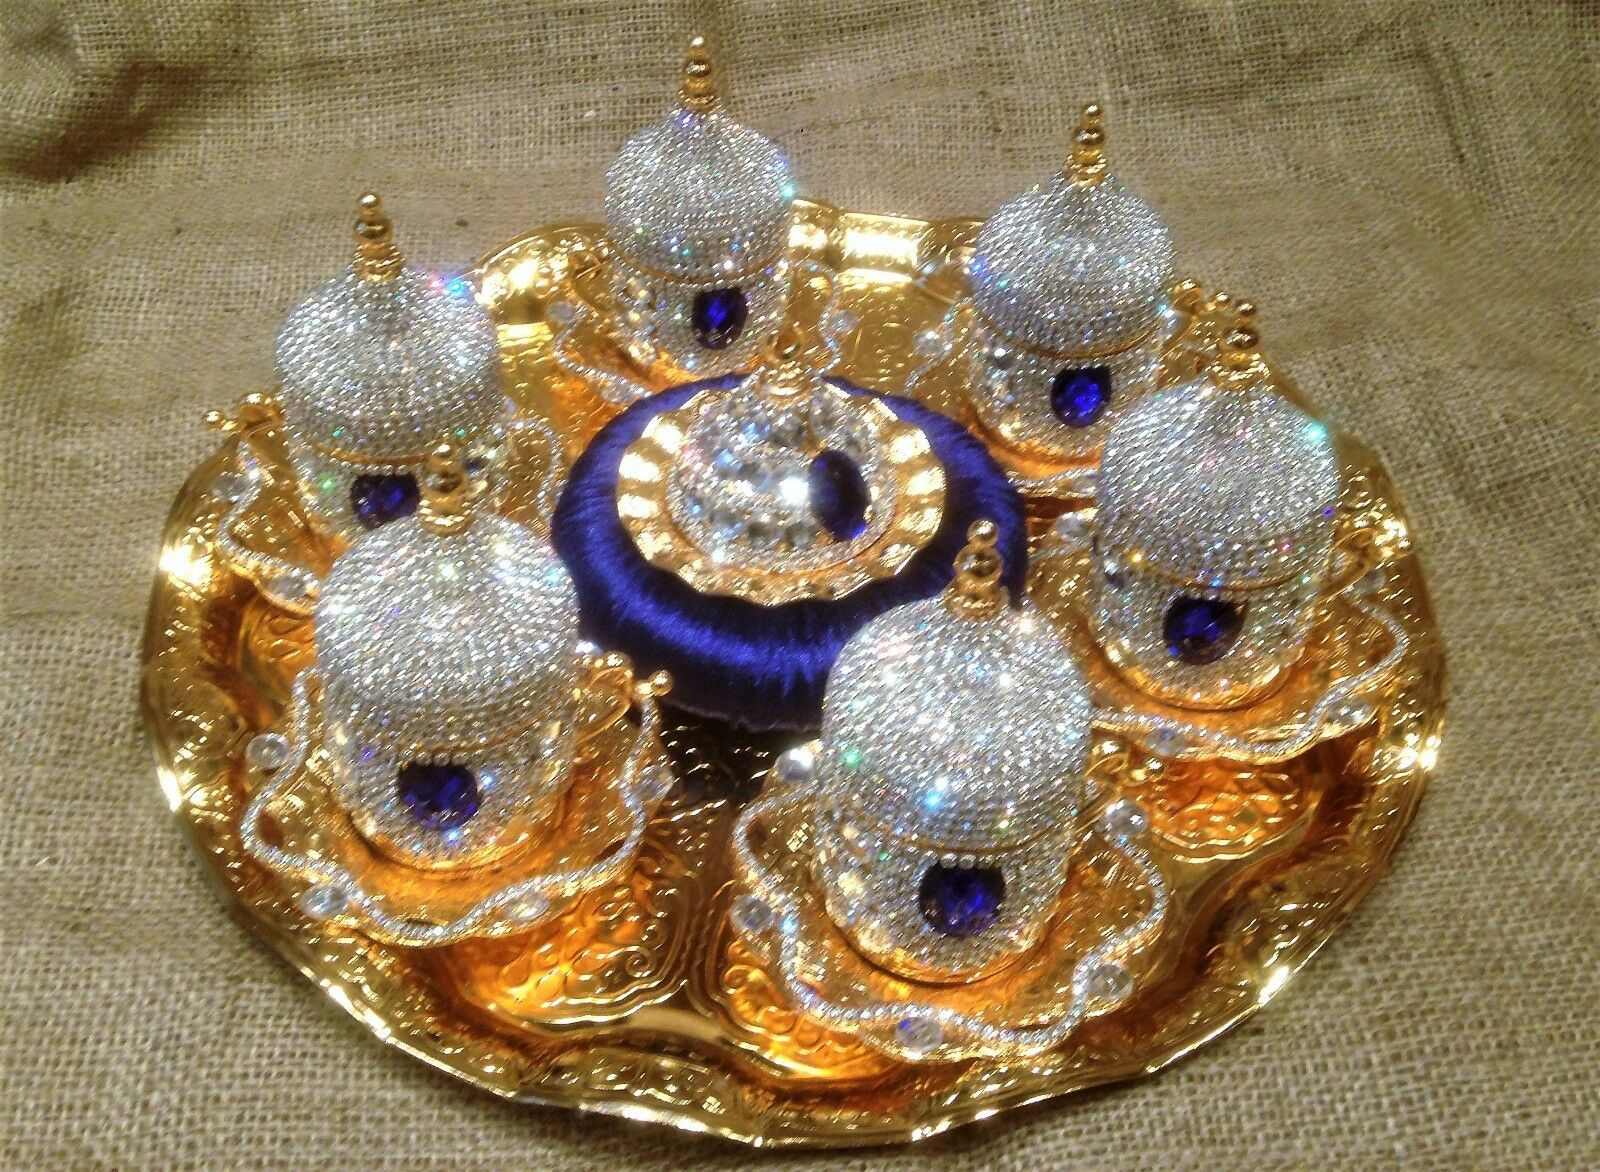 6 person coffee set with crystals and red-blue-purple - green porcelain